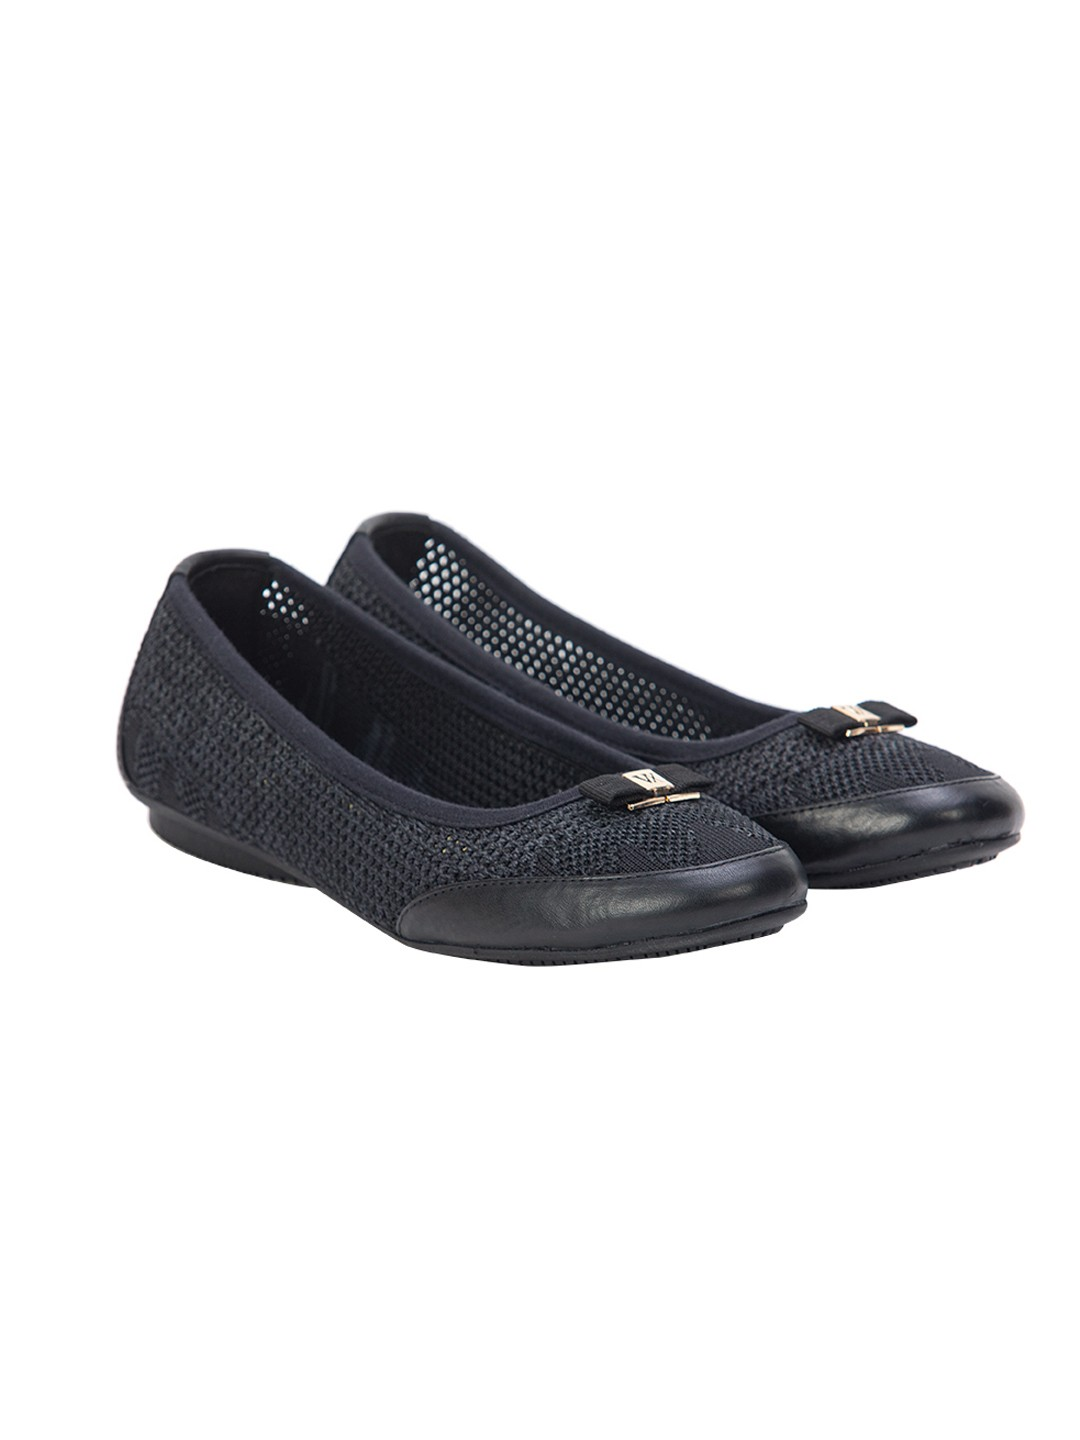 Buy VON WELLX ANISE COMFORT BLACK BELLY In Delhi